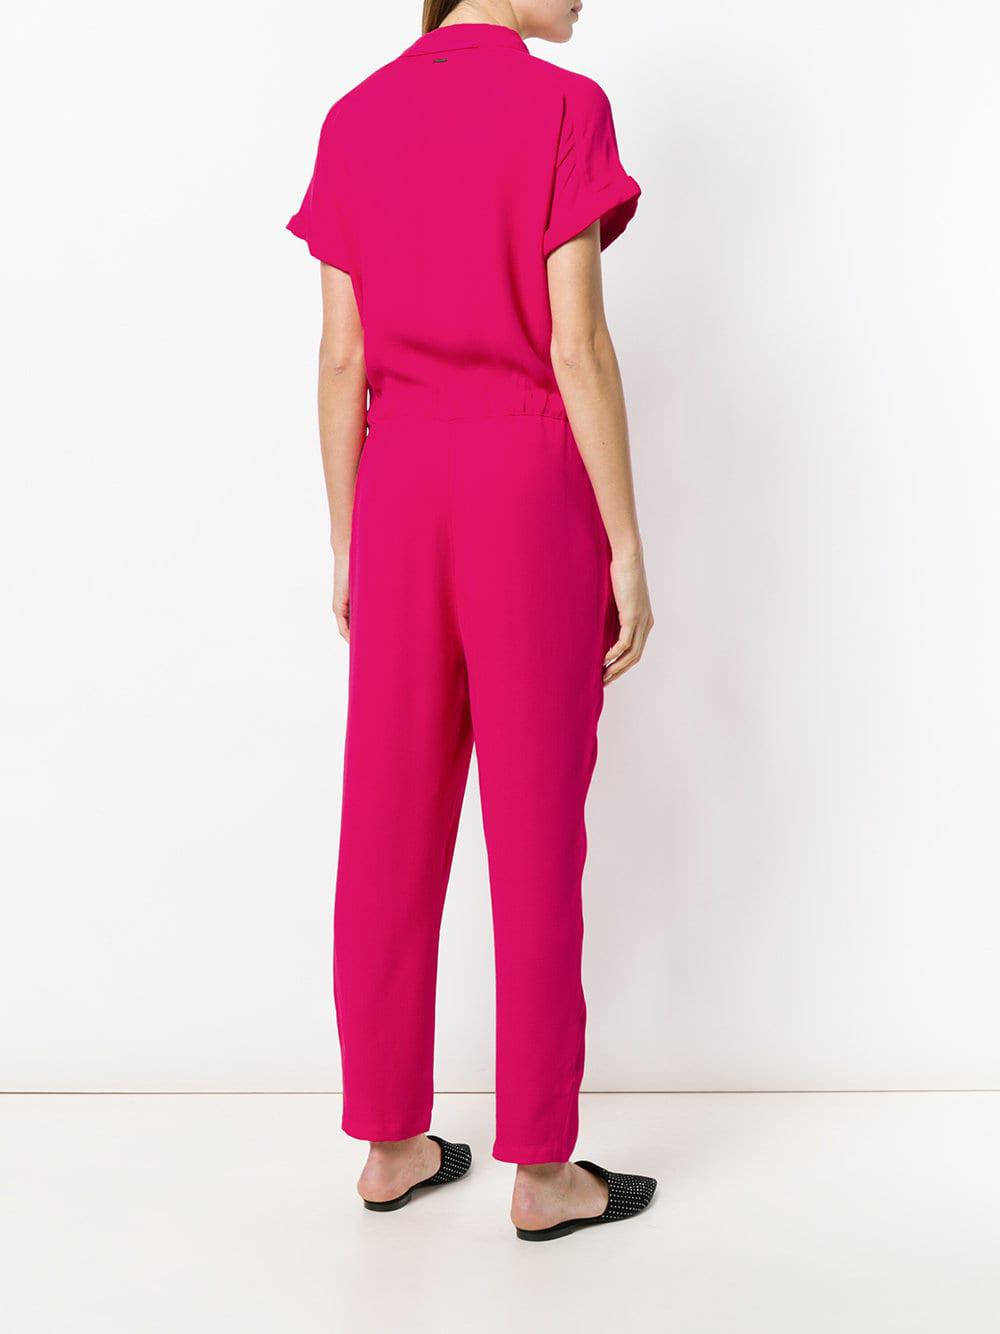 457812aefd1 Armani Exchange Asymmetric Drawstring Waist Jumpsuit in Pink - Lyst